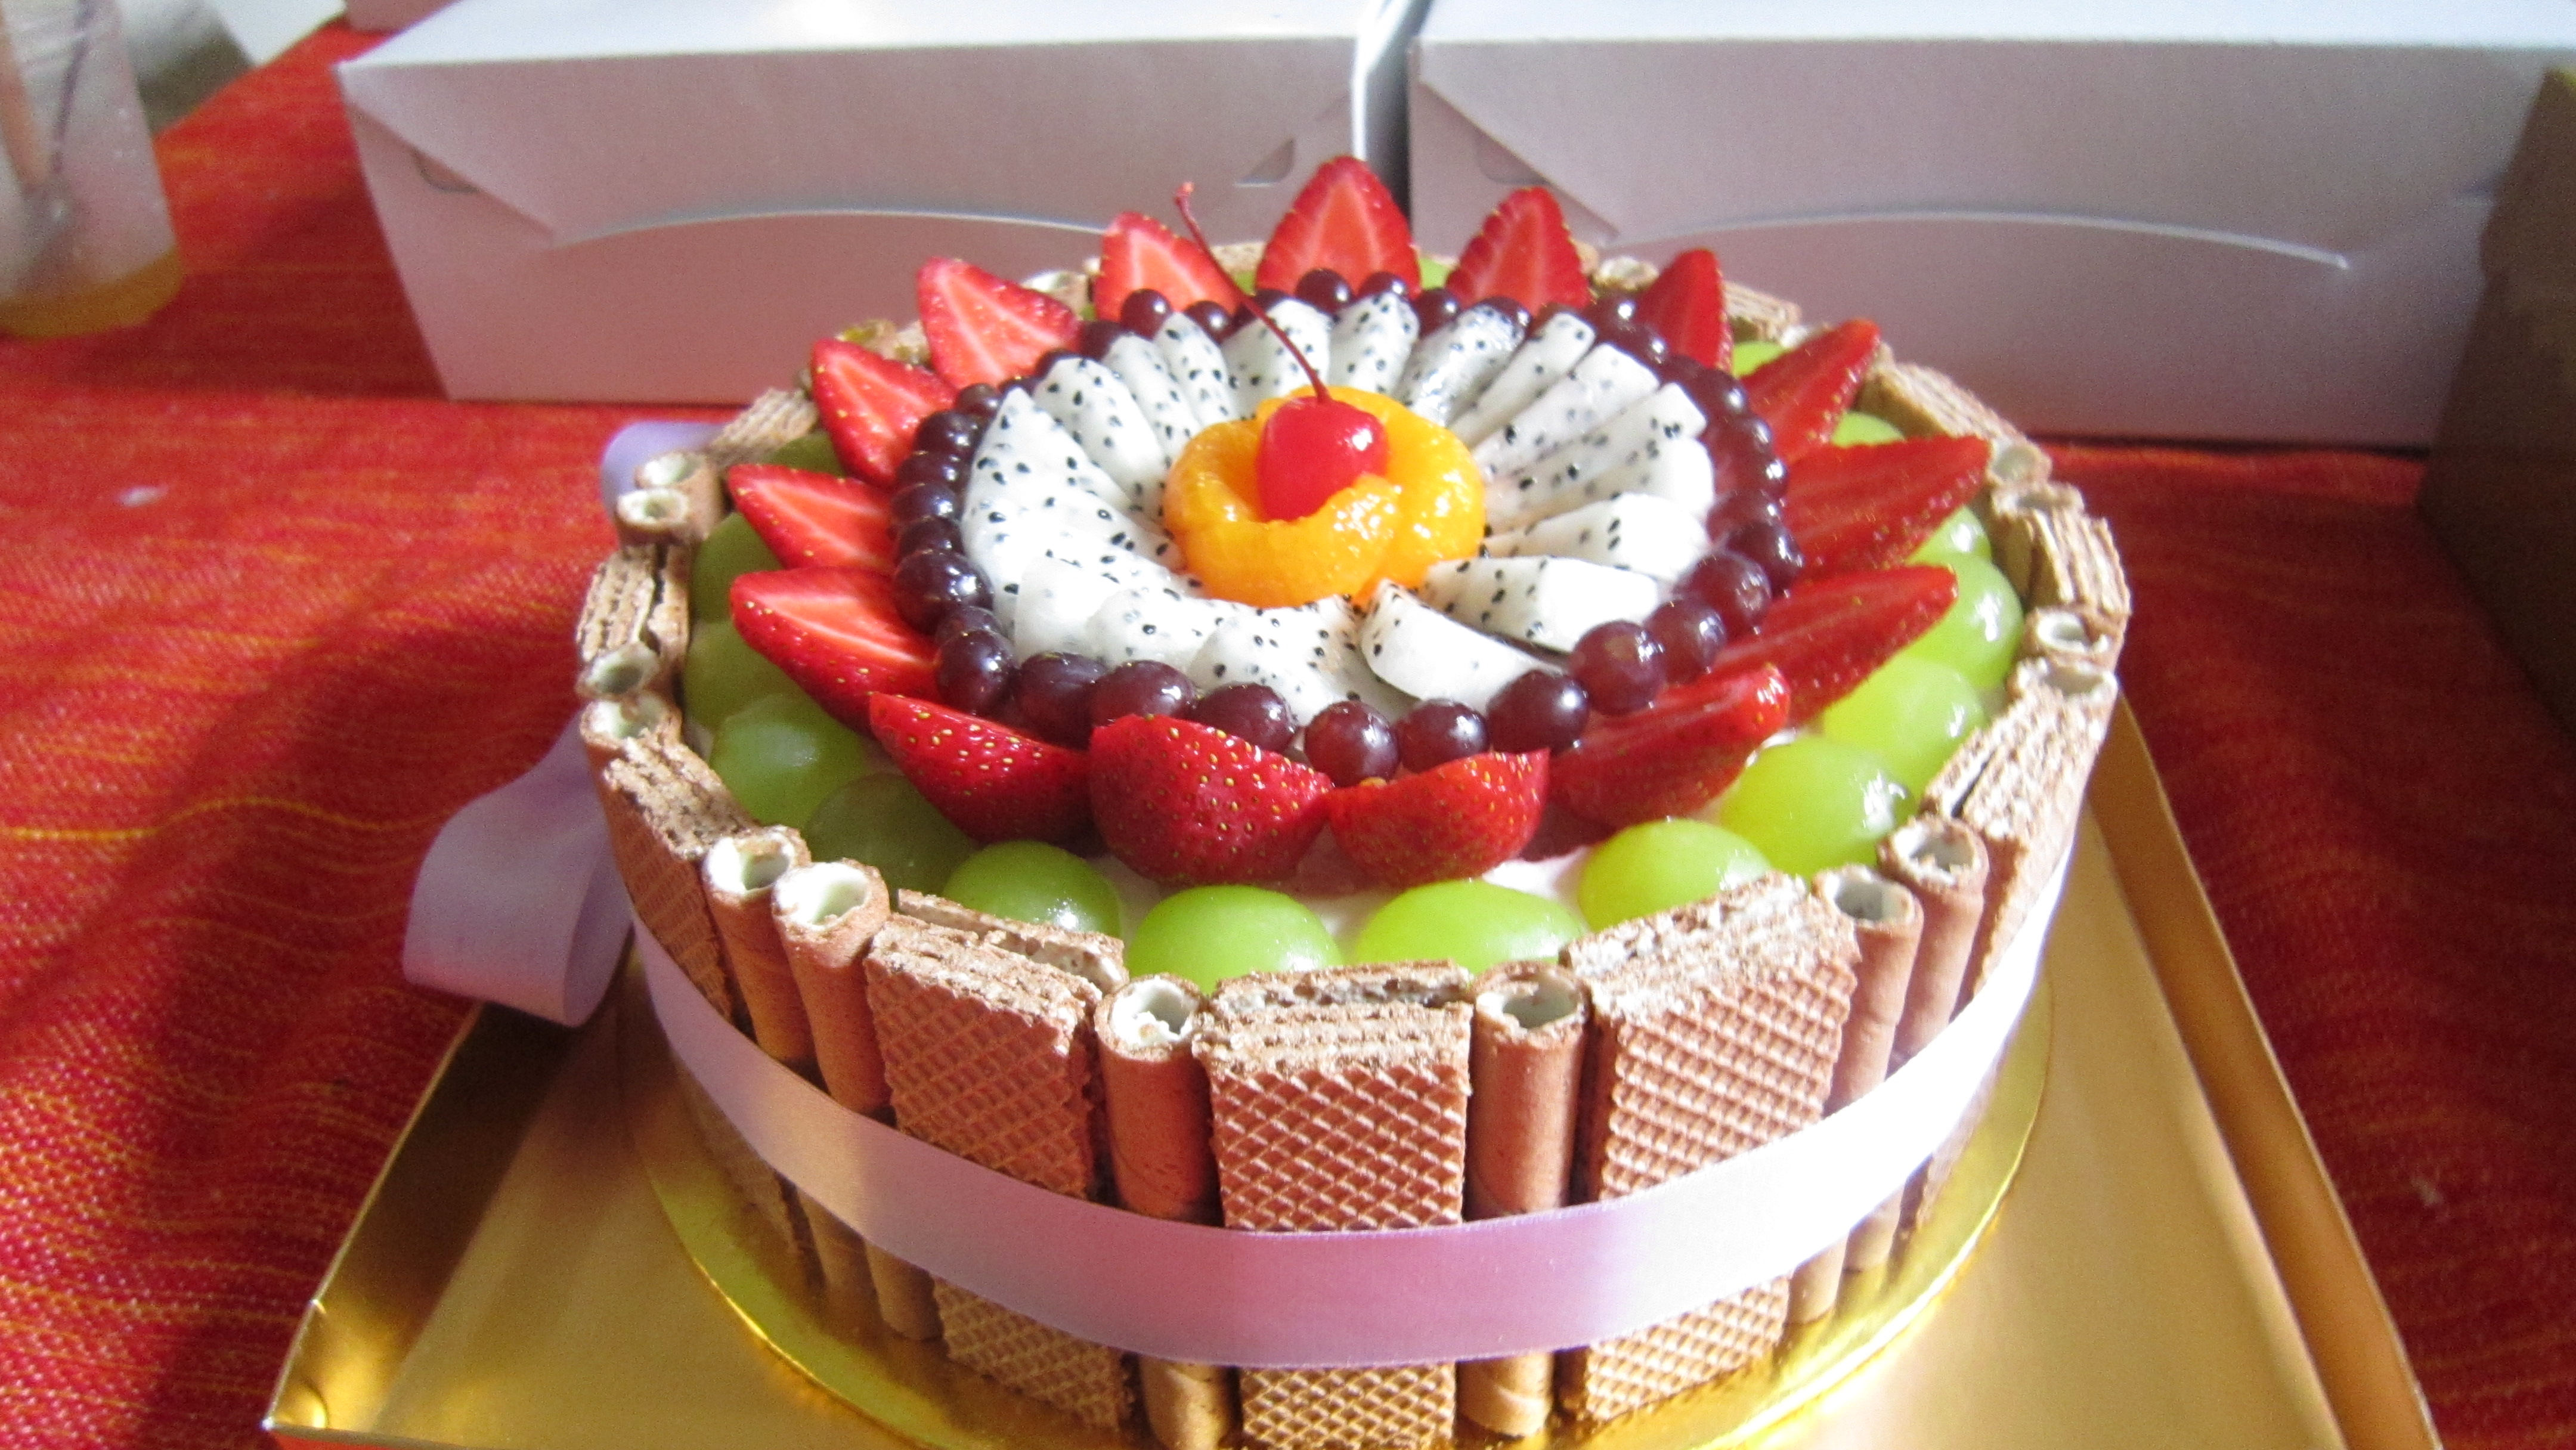 Beautiful Fruit Cake Images : Top 15 Super Enticing and Colorful Fruit Cakes - Page 8 of 16